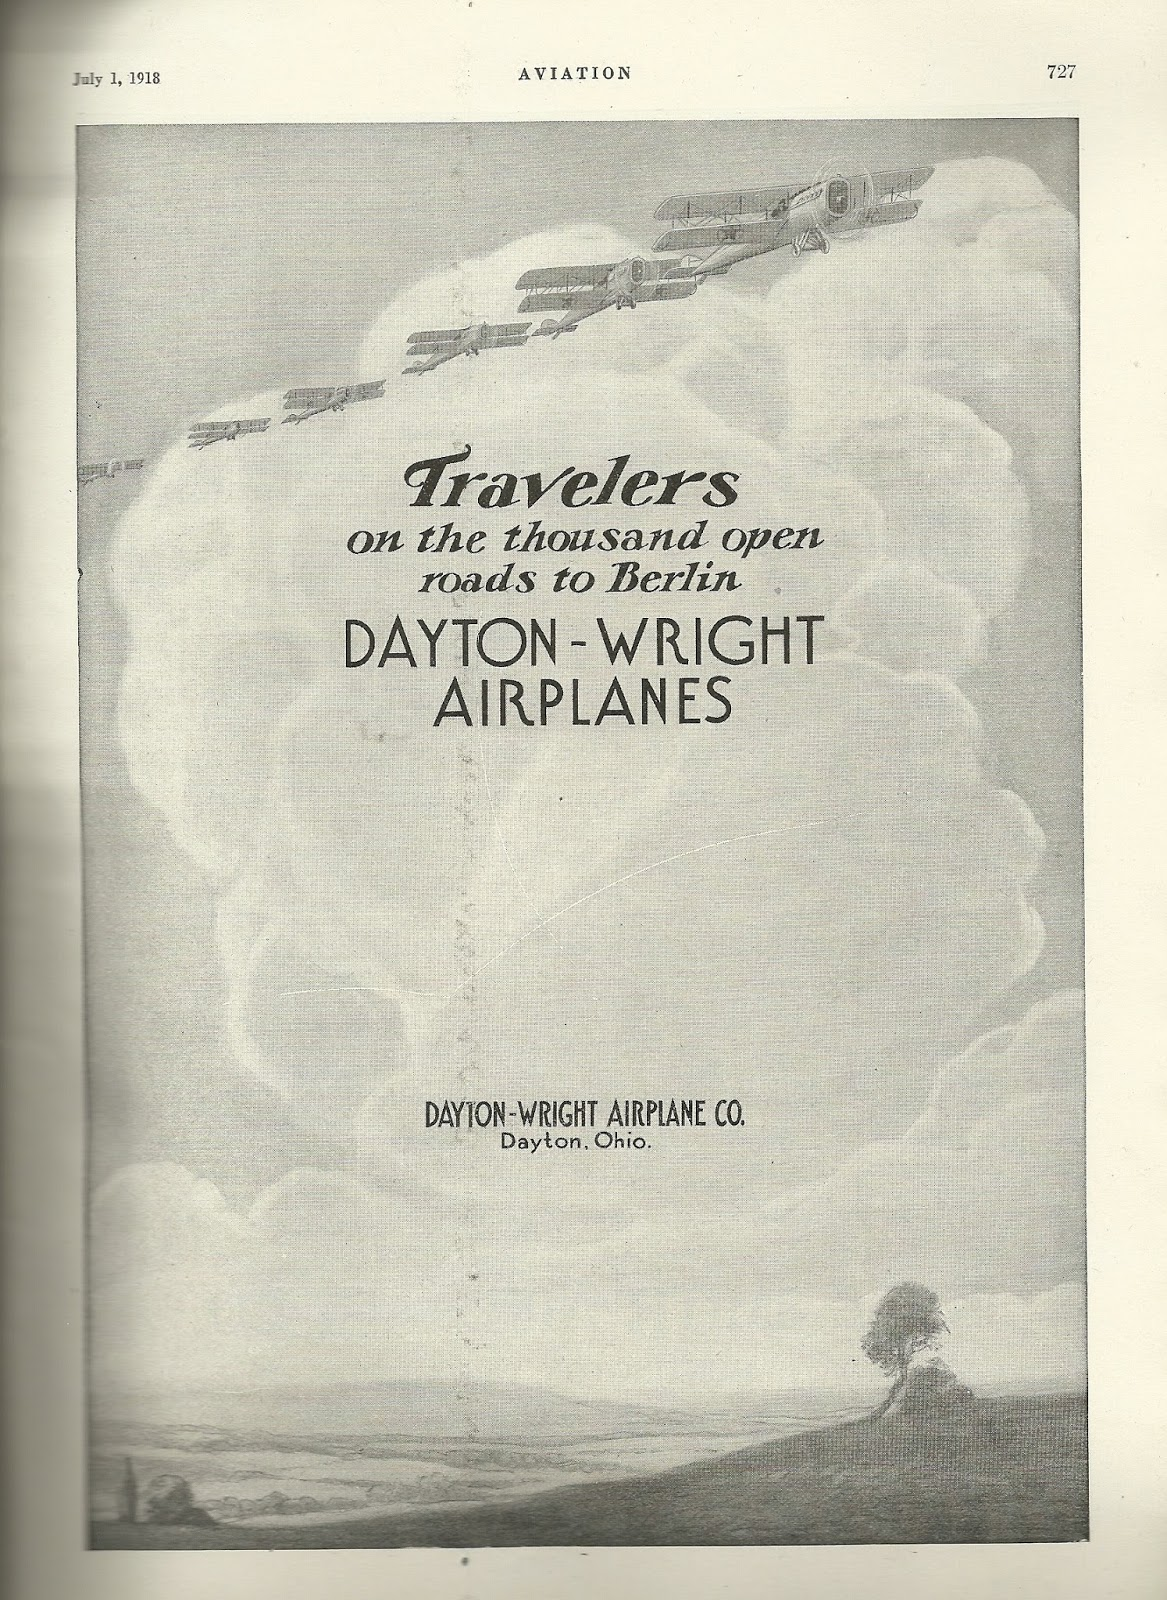 Getting the story wright just how many wright aviation companies dayton wright airplane co july 1 1918 issue of aviation aeronautical engineering malvernweather Images